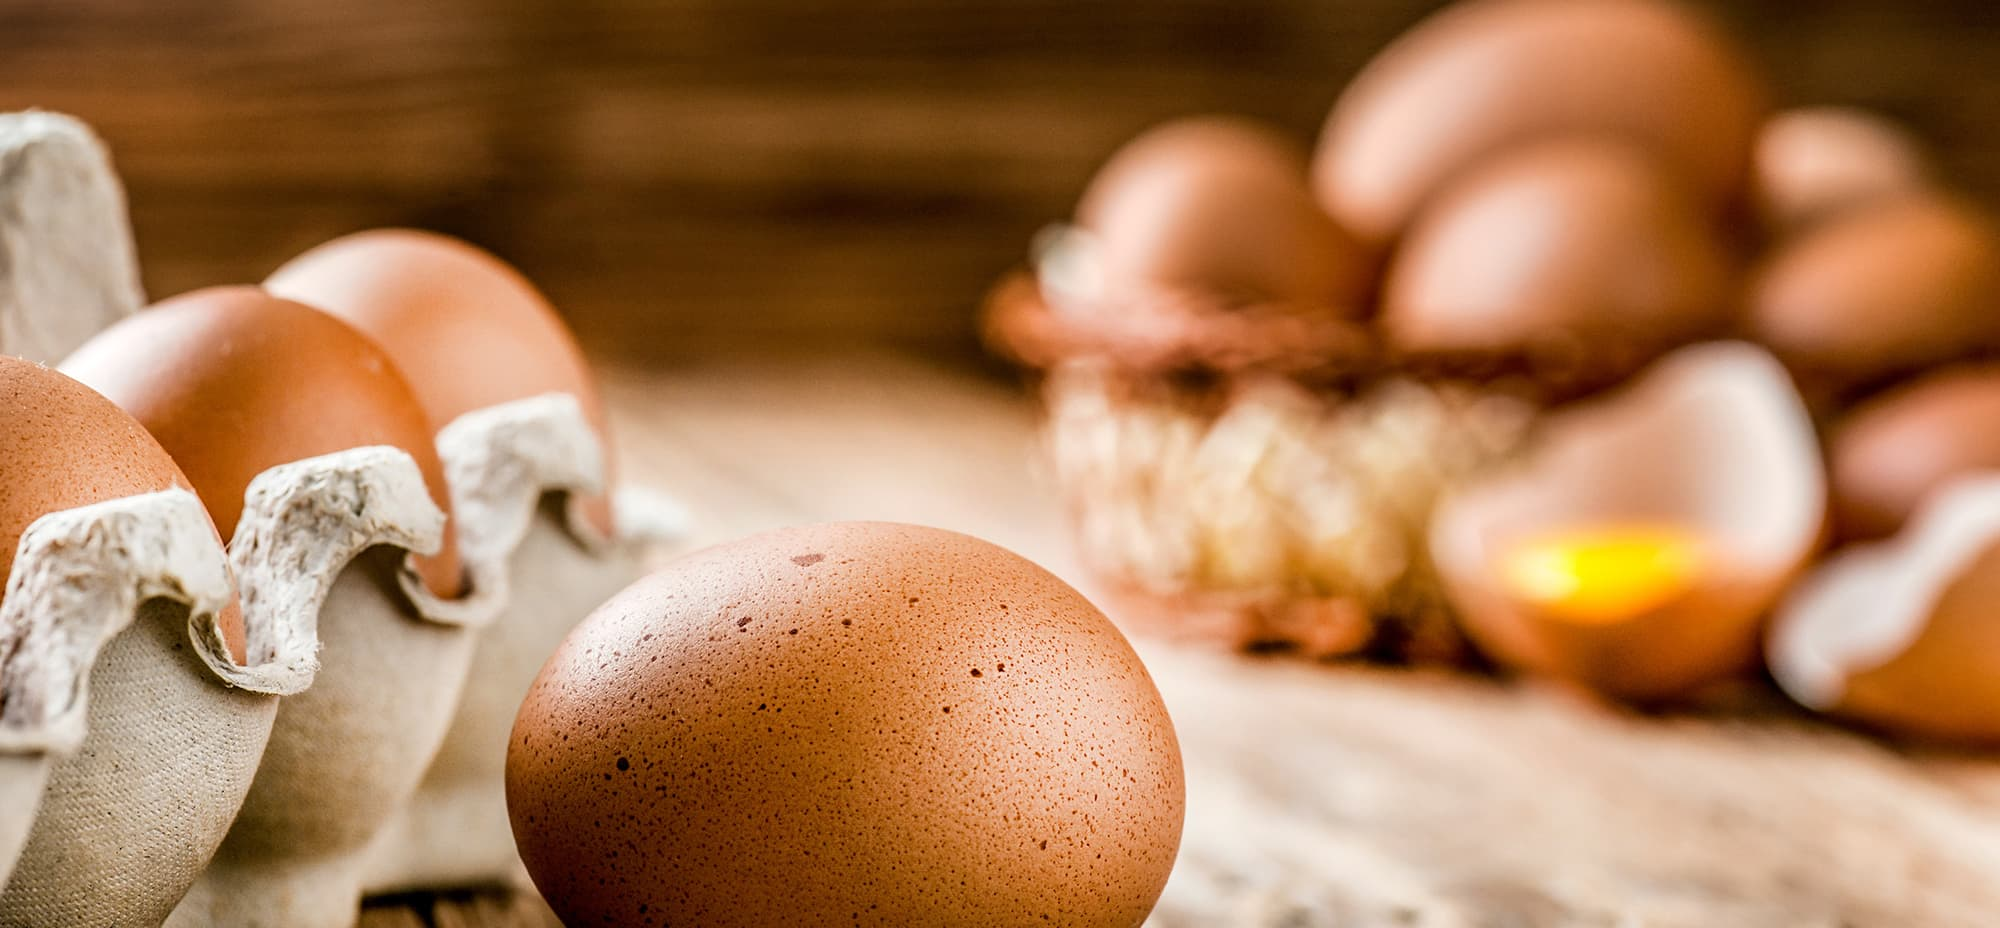 Image of a carton of eggs on a wooden board